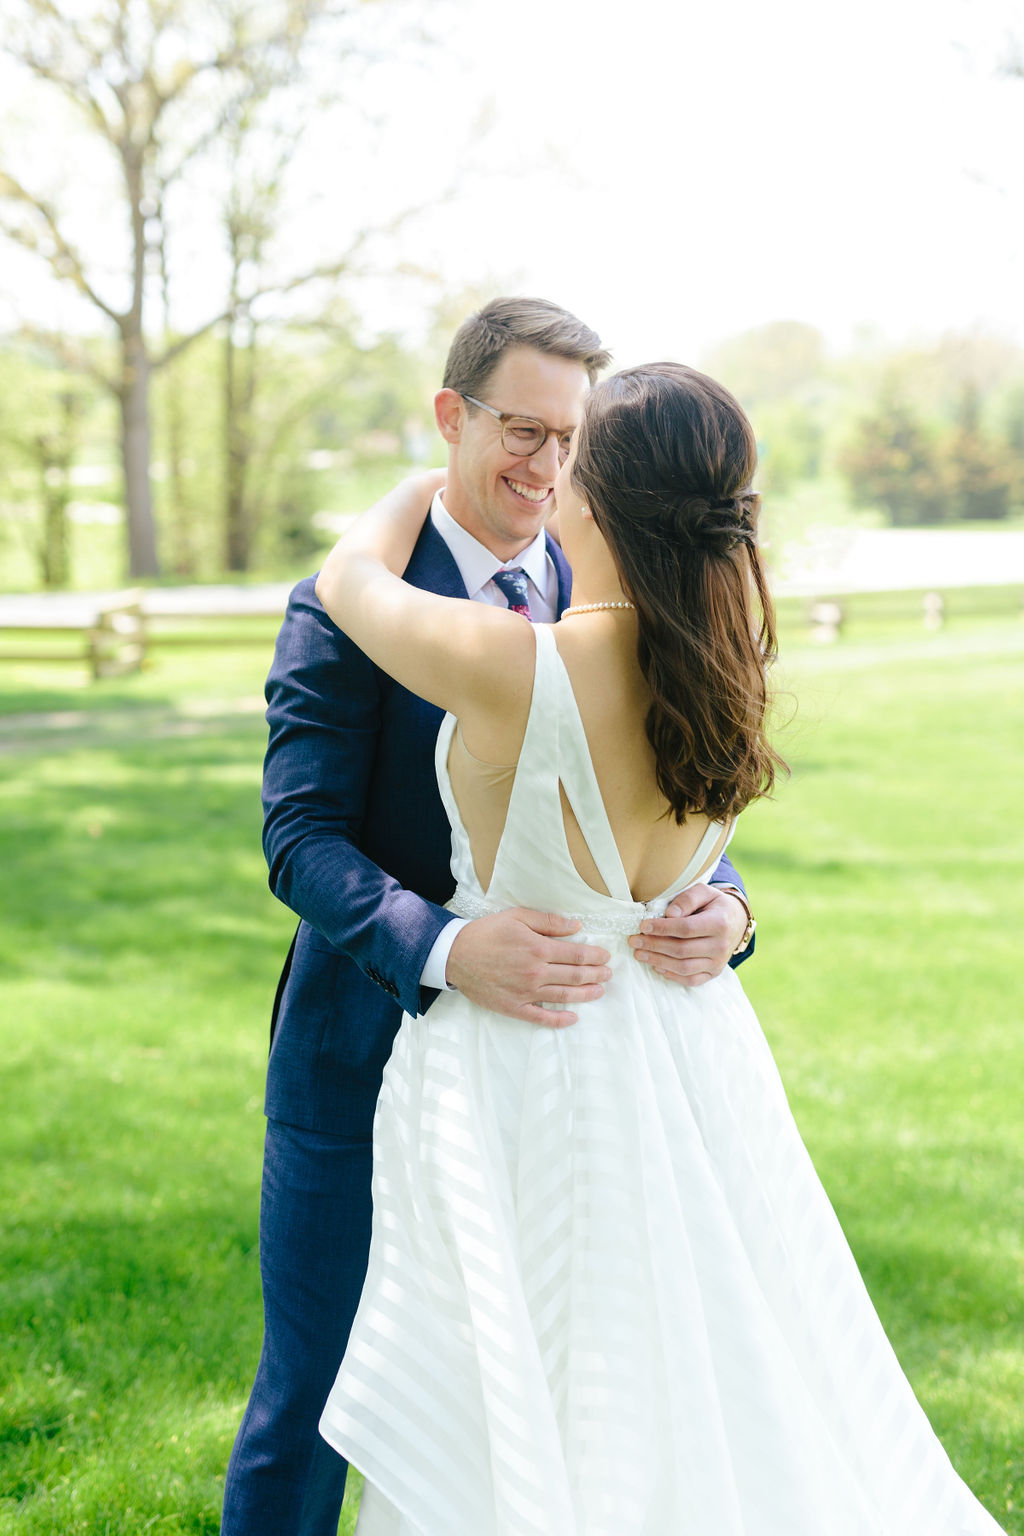 Groom smiling at their first look when he sees his bride - Preppy spring wedding at Zingerman's Cornman Farms - Leah E. Moss Designs - photo by Katie Grace Photography